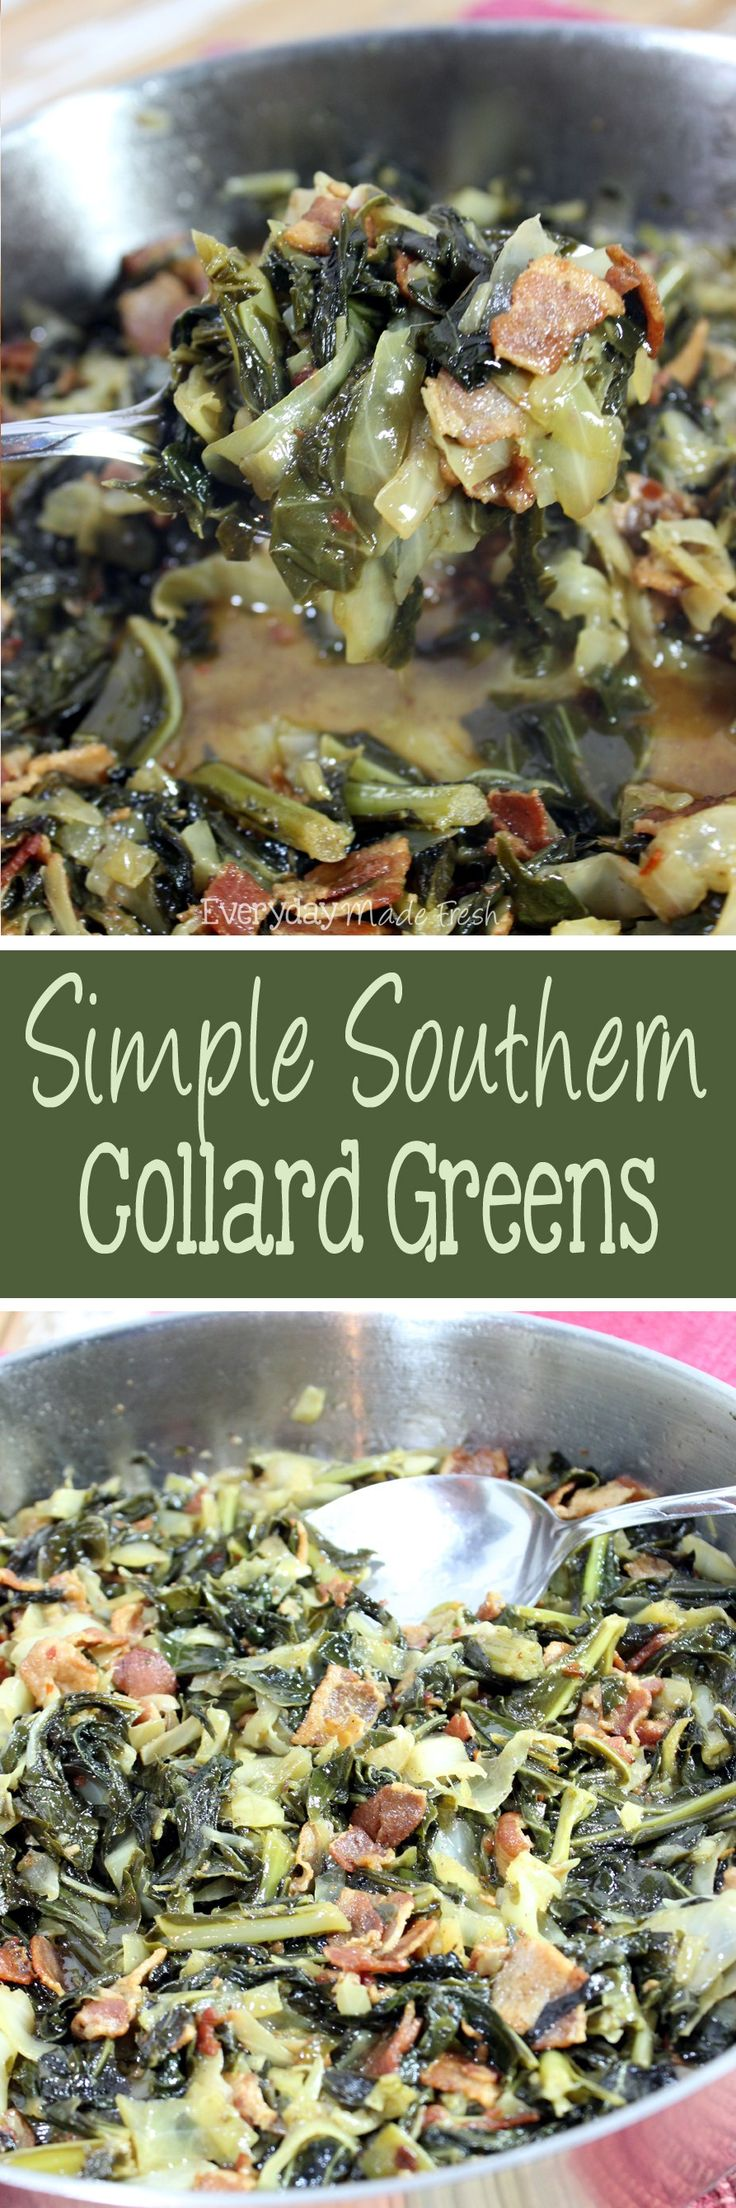 If I can make collard greens, you can too! Simple Southern Collard Greens are loaded with cabbage, thick-cut bacon, and spiced up just right.  #holidayrecipes #southerncooking #southernrecipes | EverydayMadeFresh.com